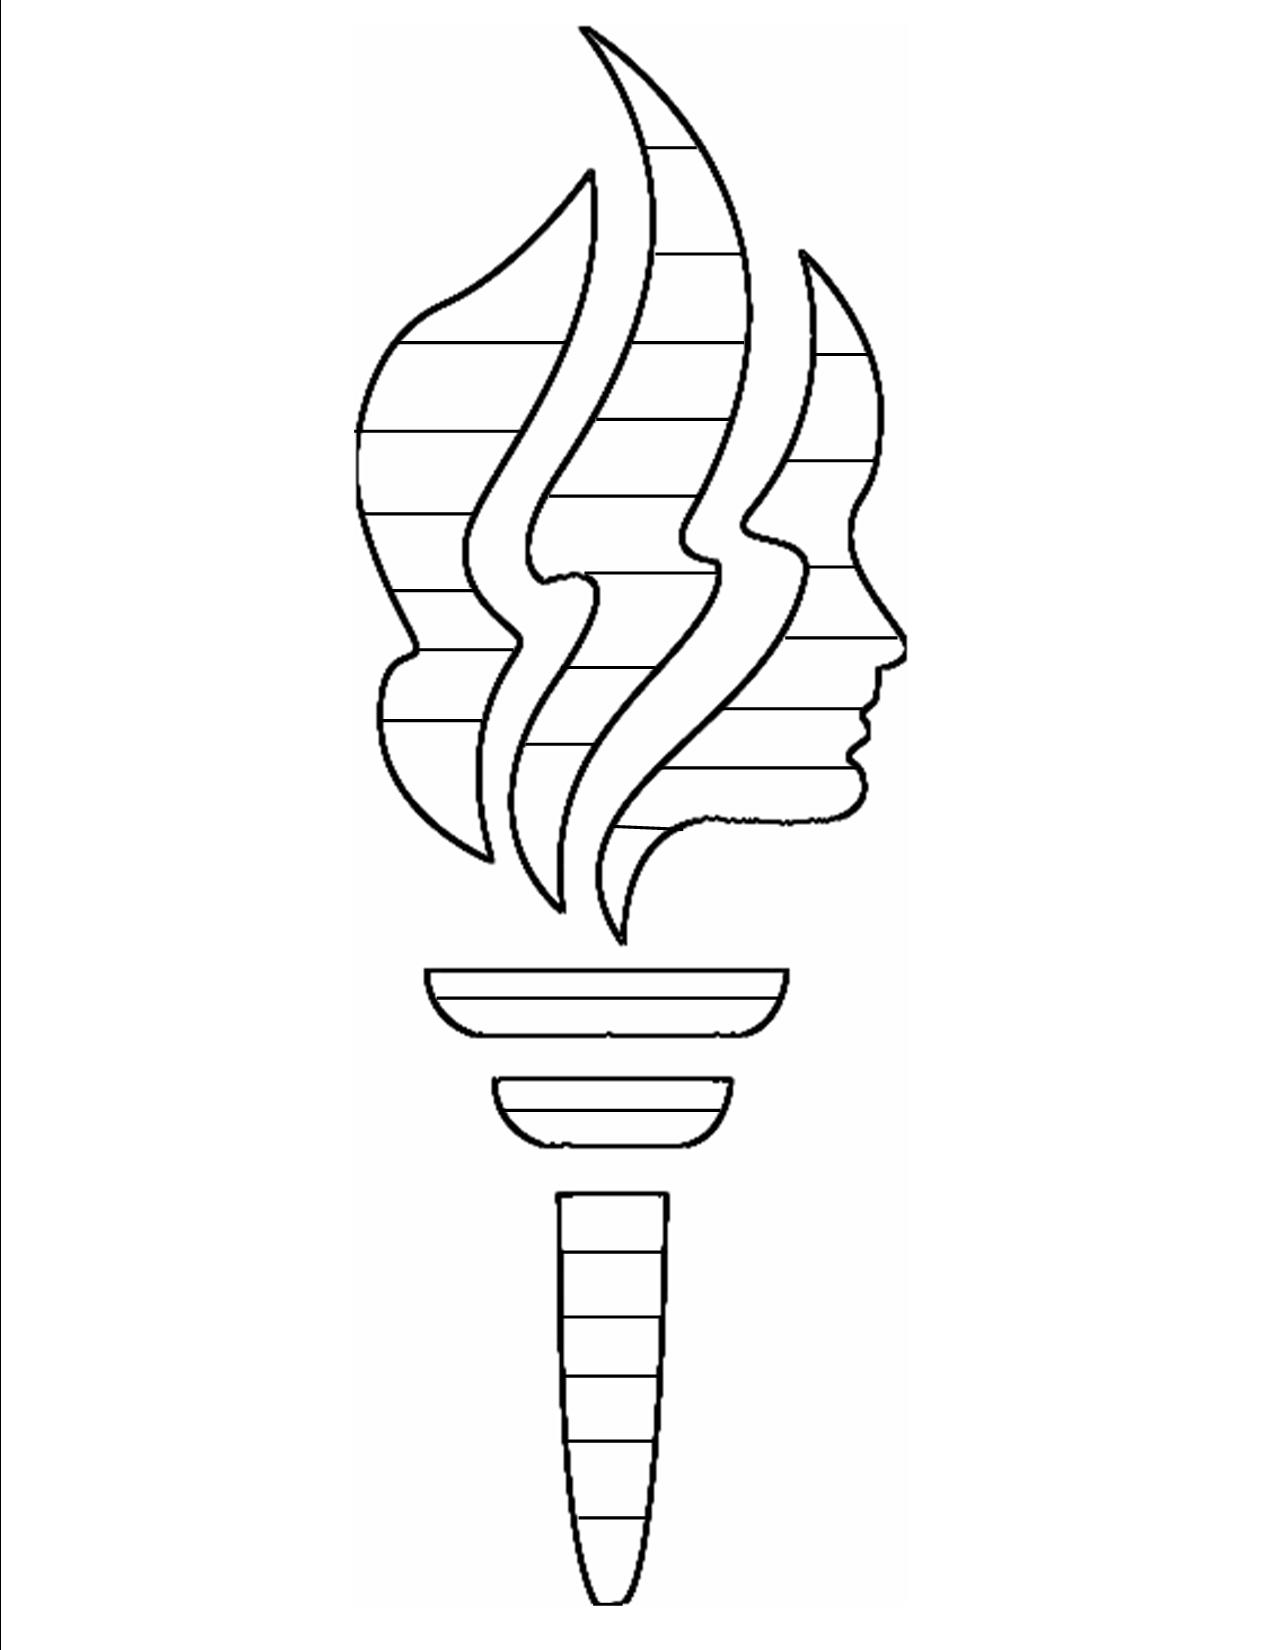 LDS Young Women Torch Clip Art free image.